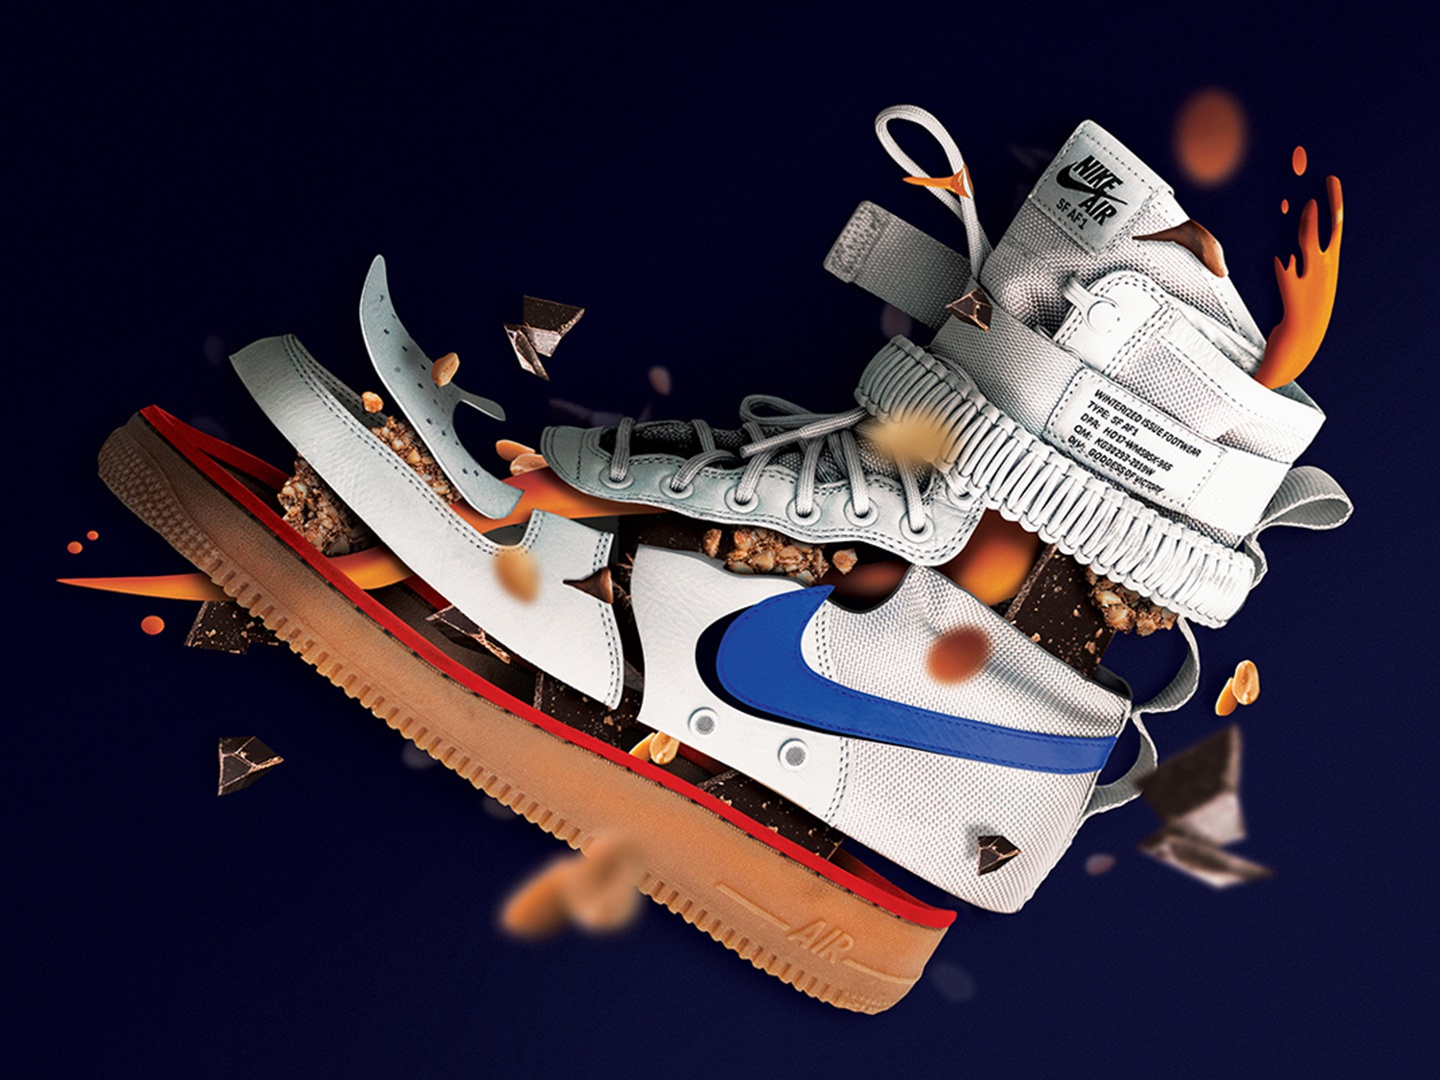 Sneakers' snickers chocolate nikesf nikeair nike shoes explosion explode photoshop sneakers